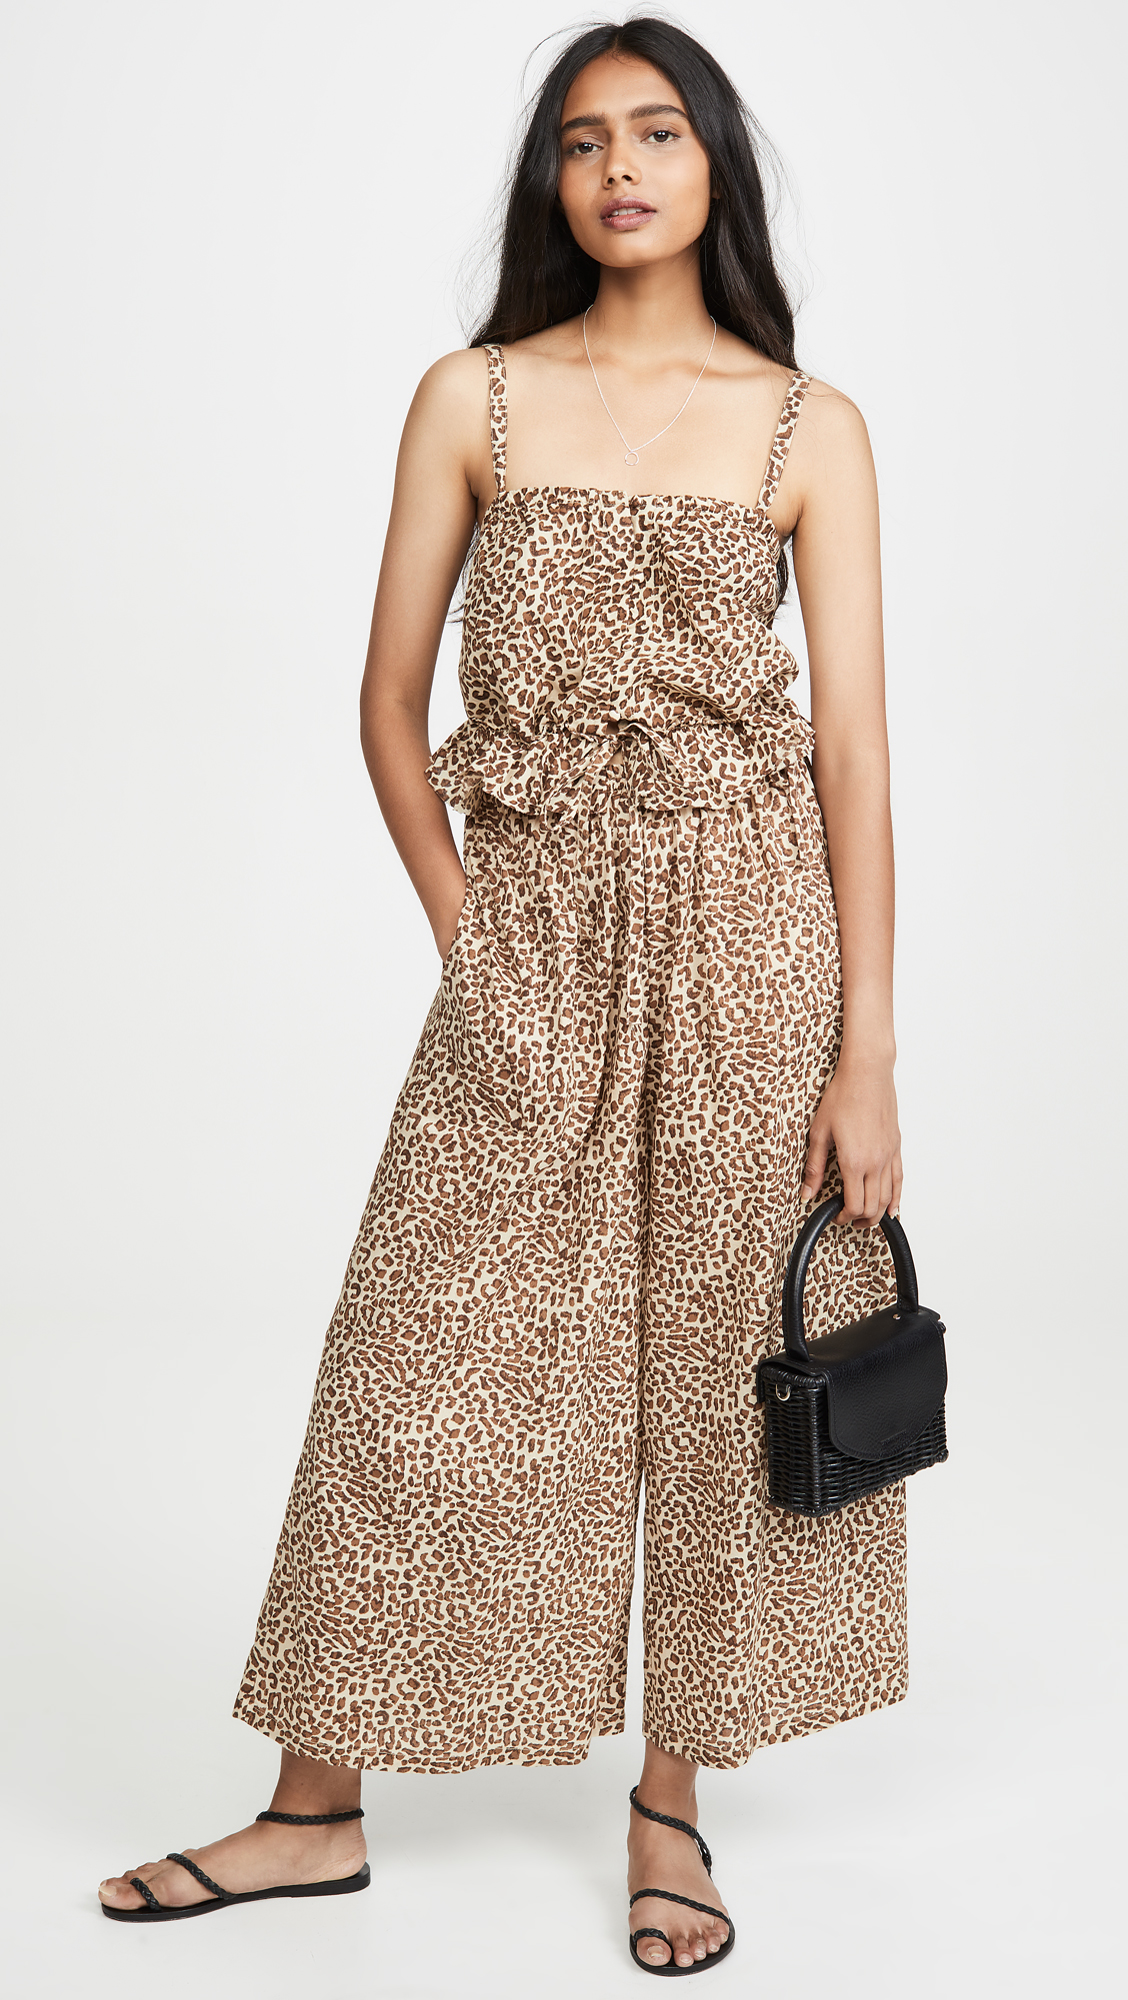 Leopard Print Peplum Top and Leopard Print Wide Leg Pants